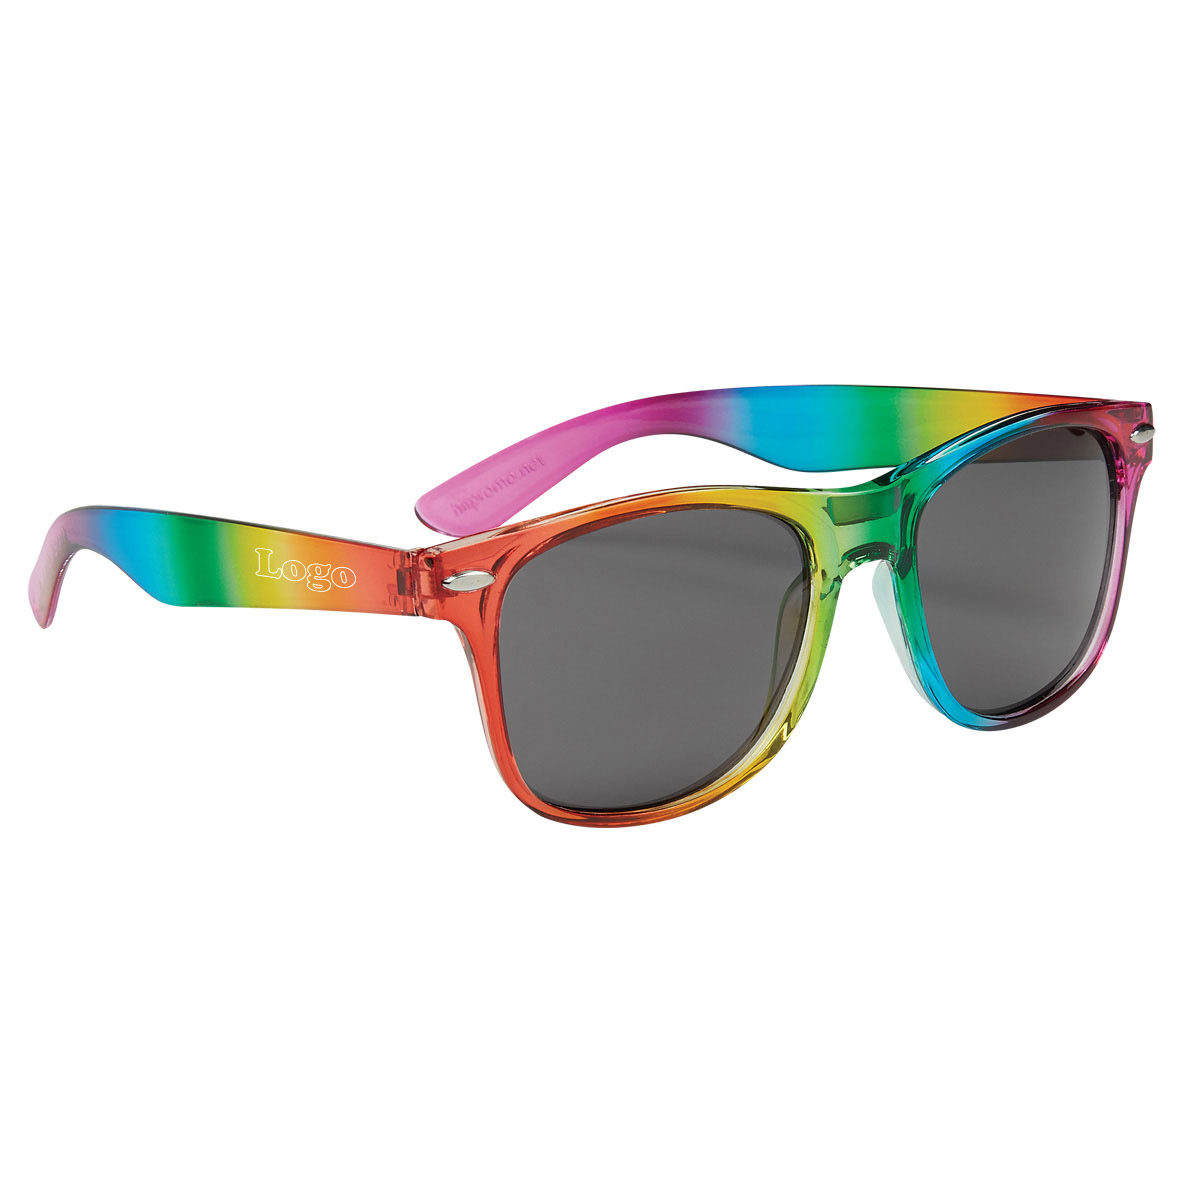 223990 rainbow boca sunglasses one color one location imprint